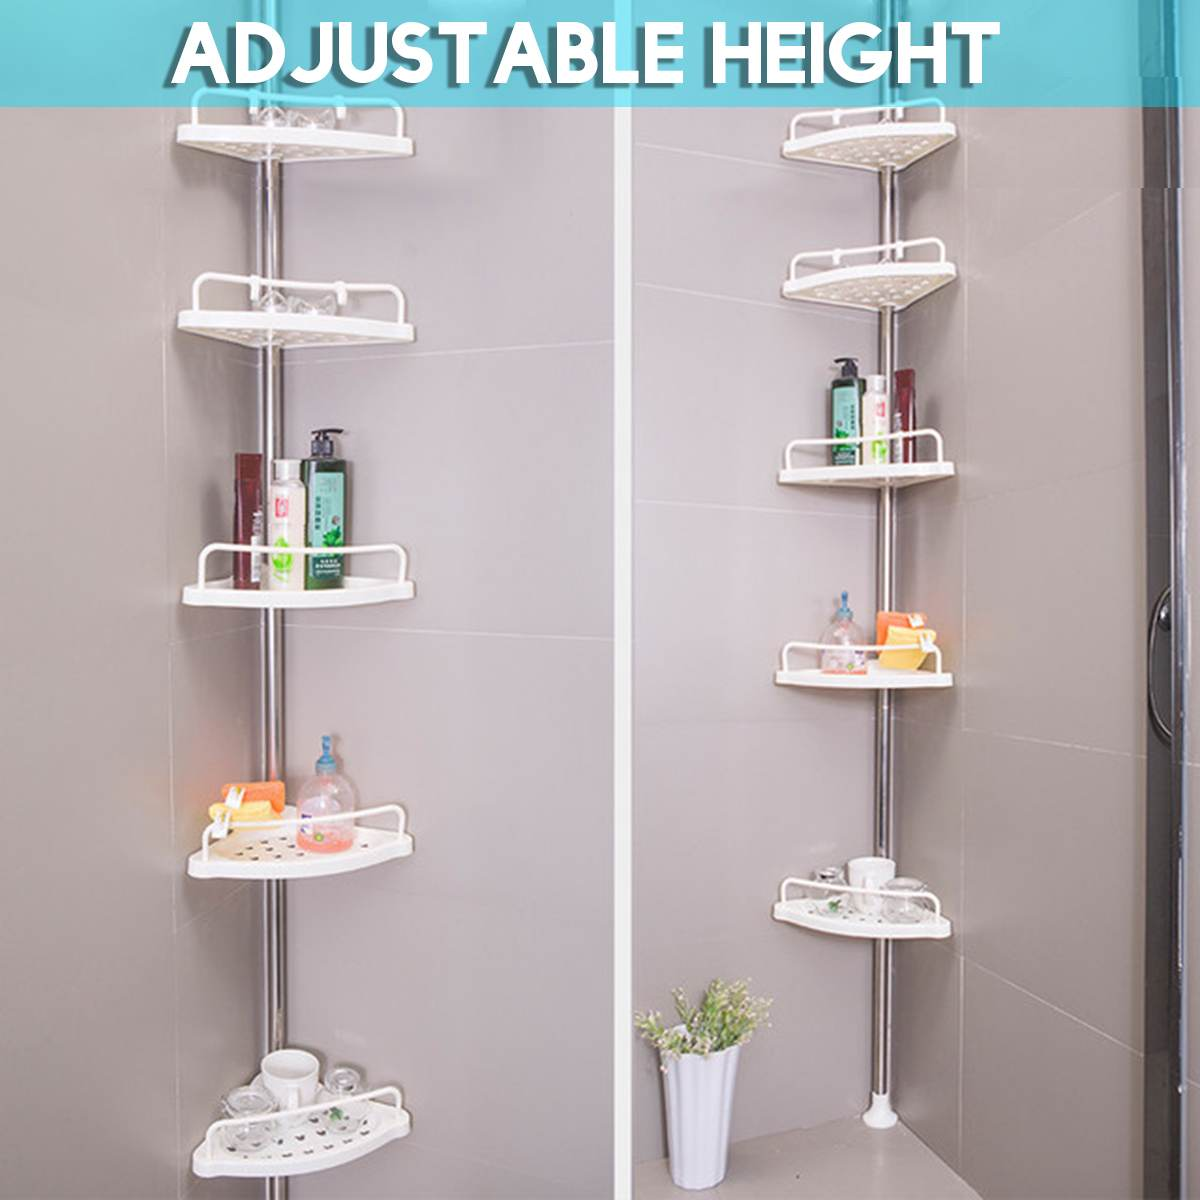 1Set Stainless Steel 5 Tier Telescopic Bathroom Corner Shelf Rack Shower Caddy Storage Bathroom Shelves Space Saving Bath Access